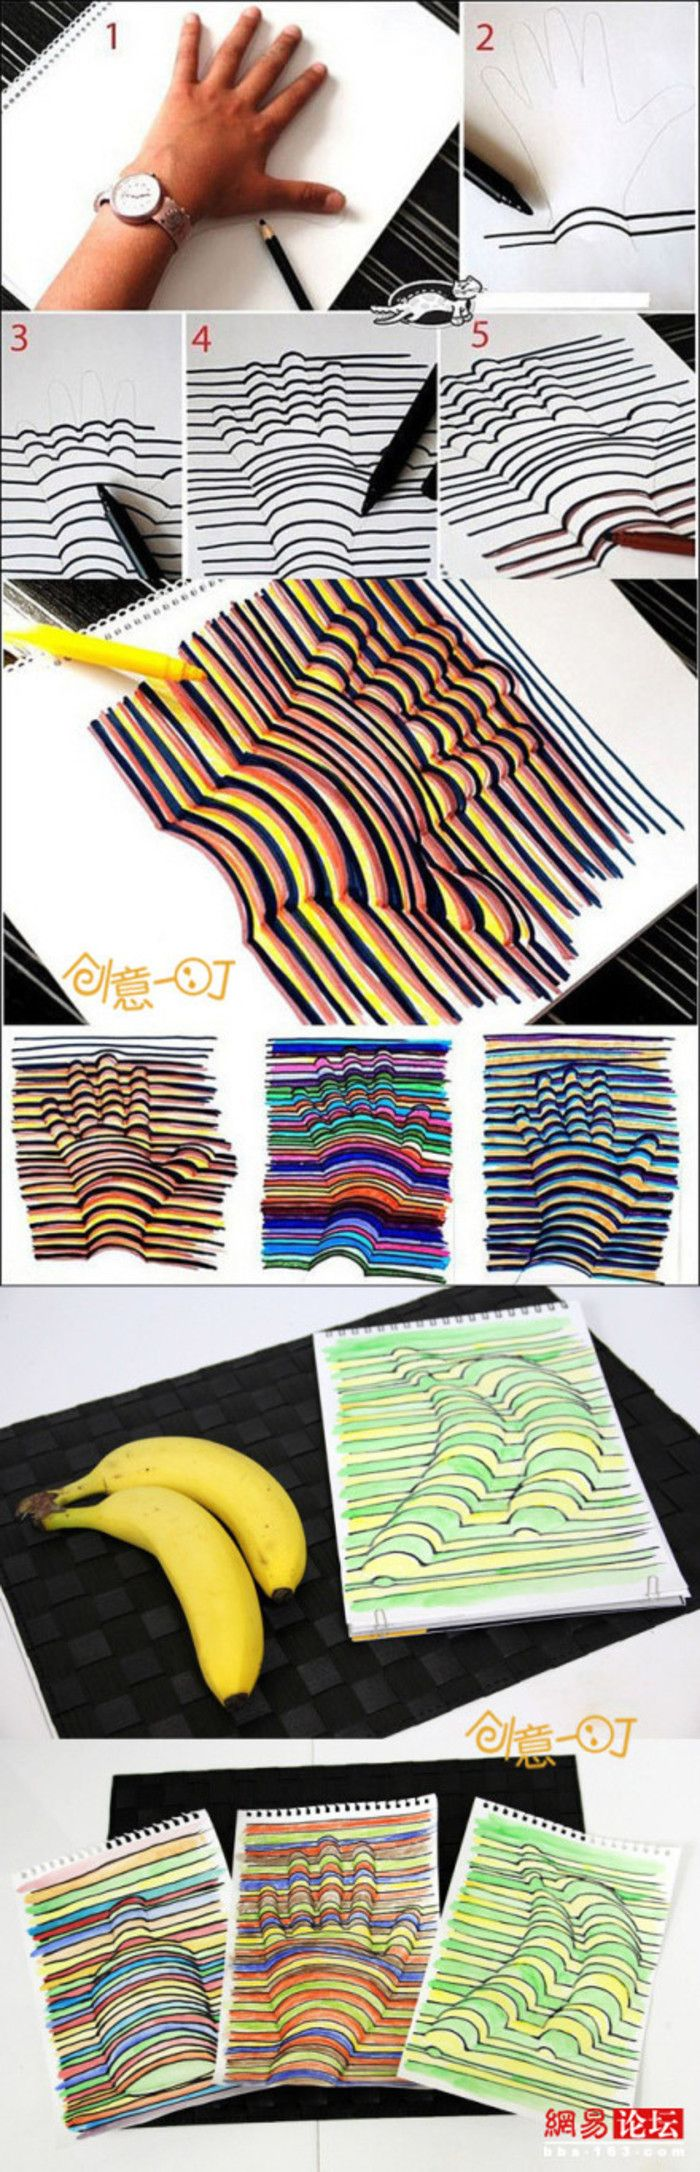 3d dessin pinterest object drawing for 3d drawing online